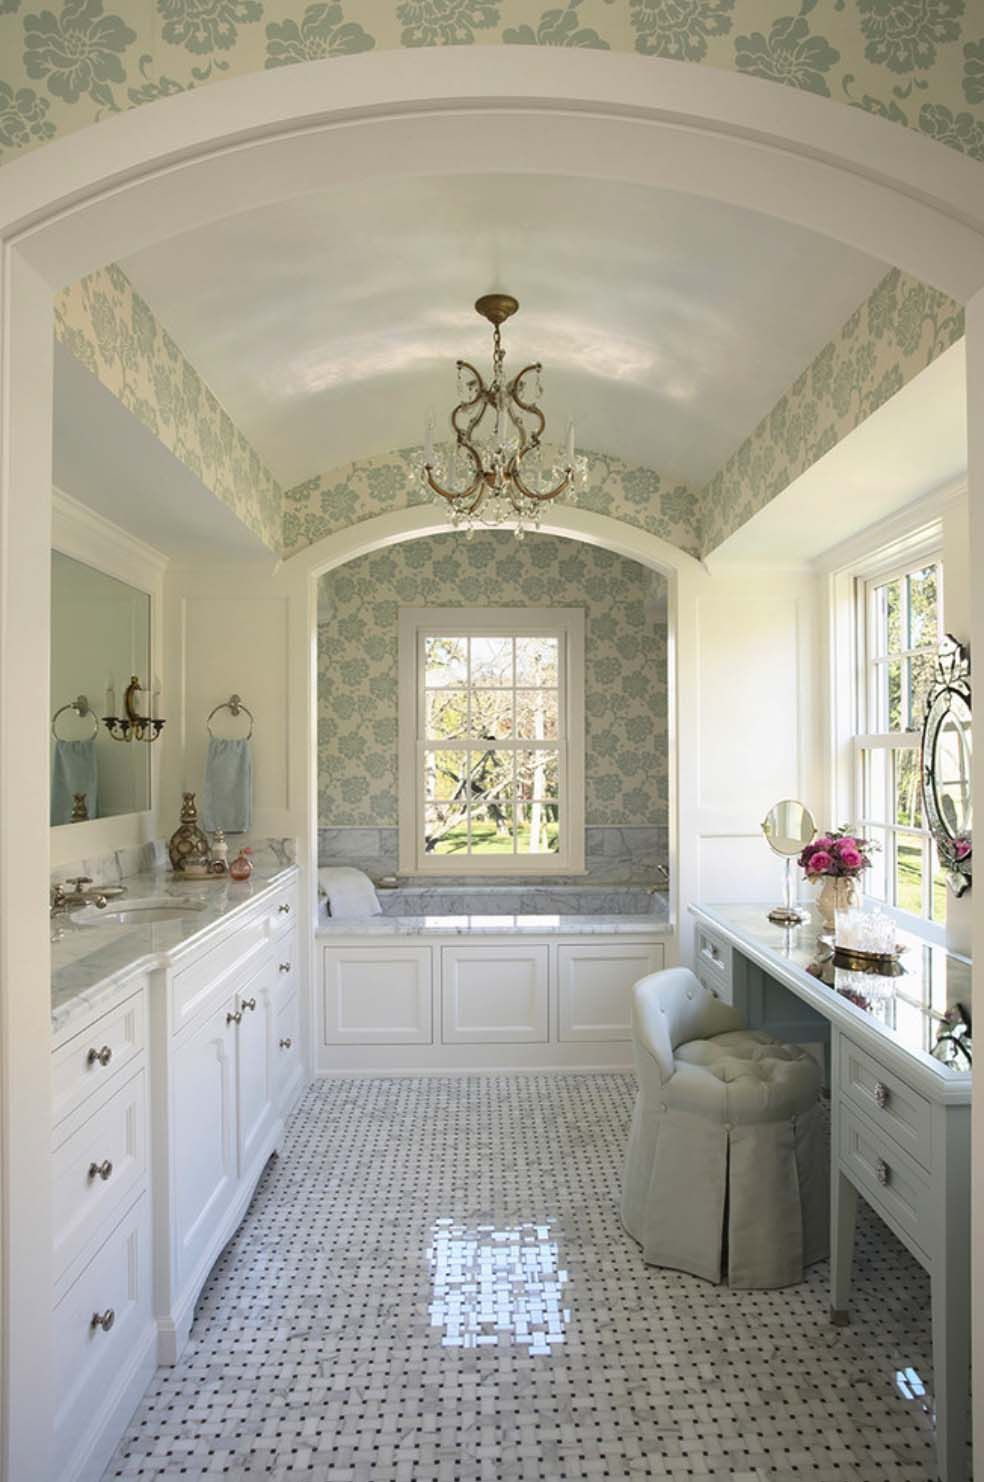 53 Most Fabulous Traditional Style Bathroom Designs Ever Dream Bathrooms Home Dream House